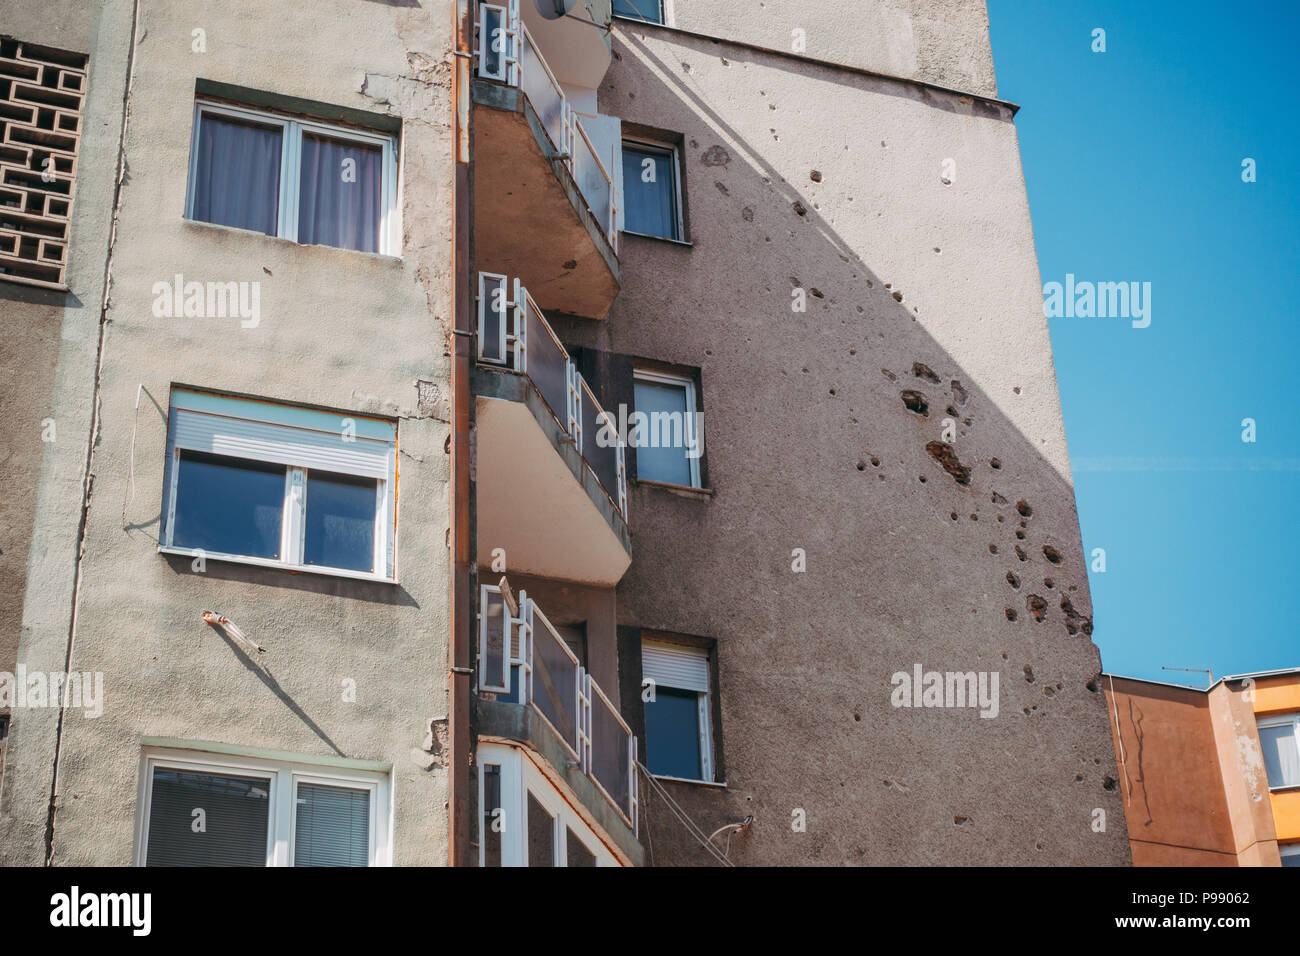 Holes from shell shrapnel still marks the walls of many buildings and homes in Sarajevo, Bosnia and Herzegovina, decades after the seige ended - Stock Image